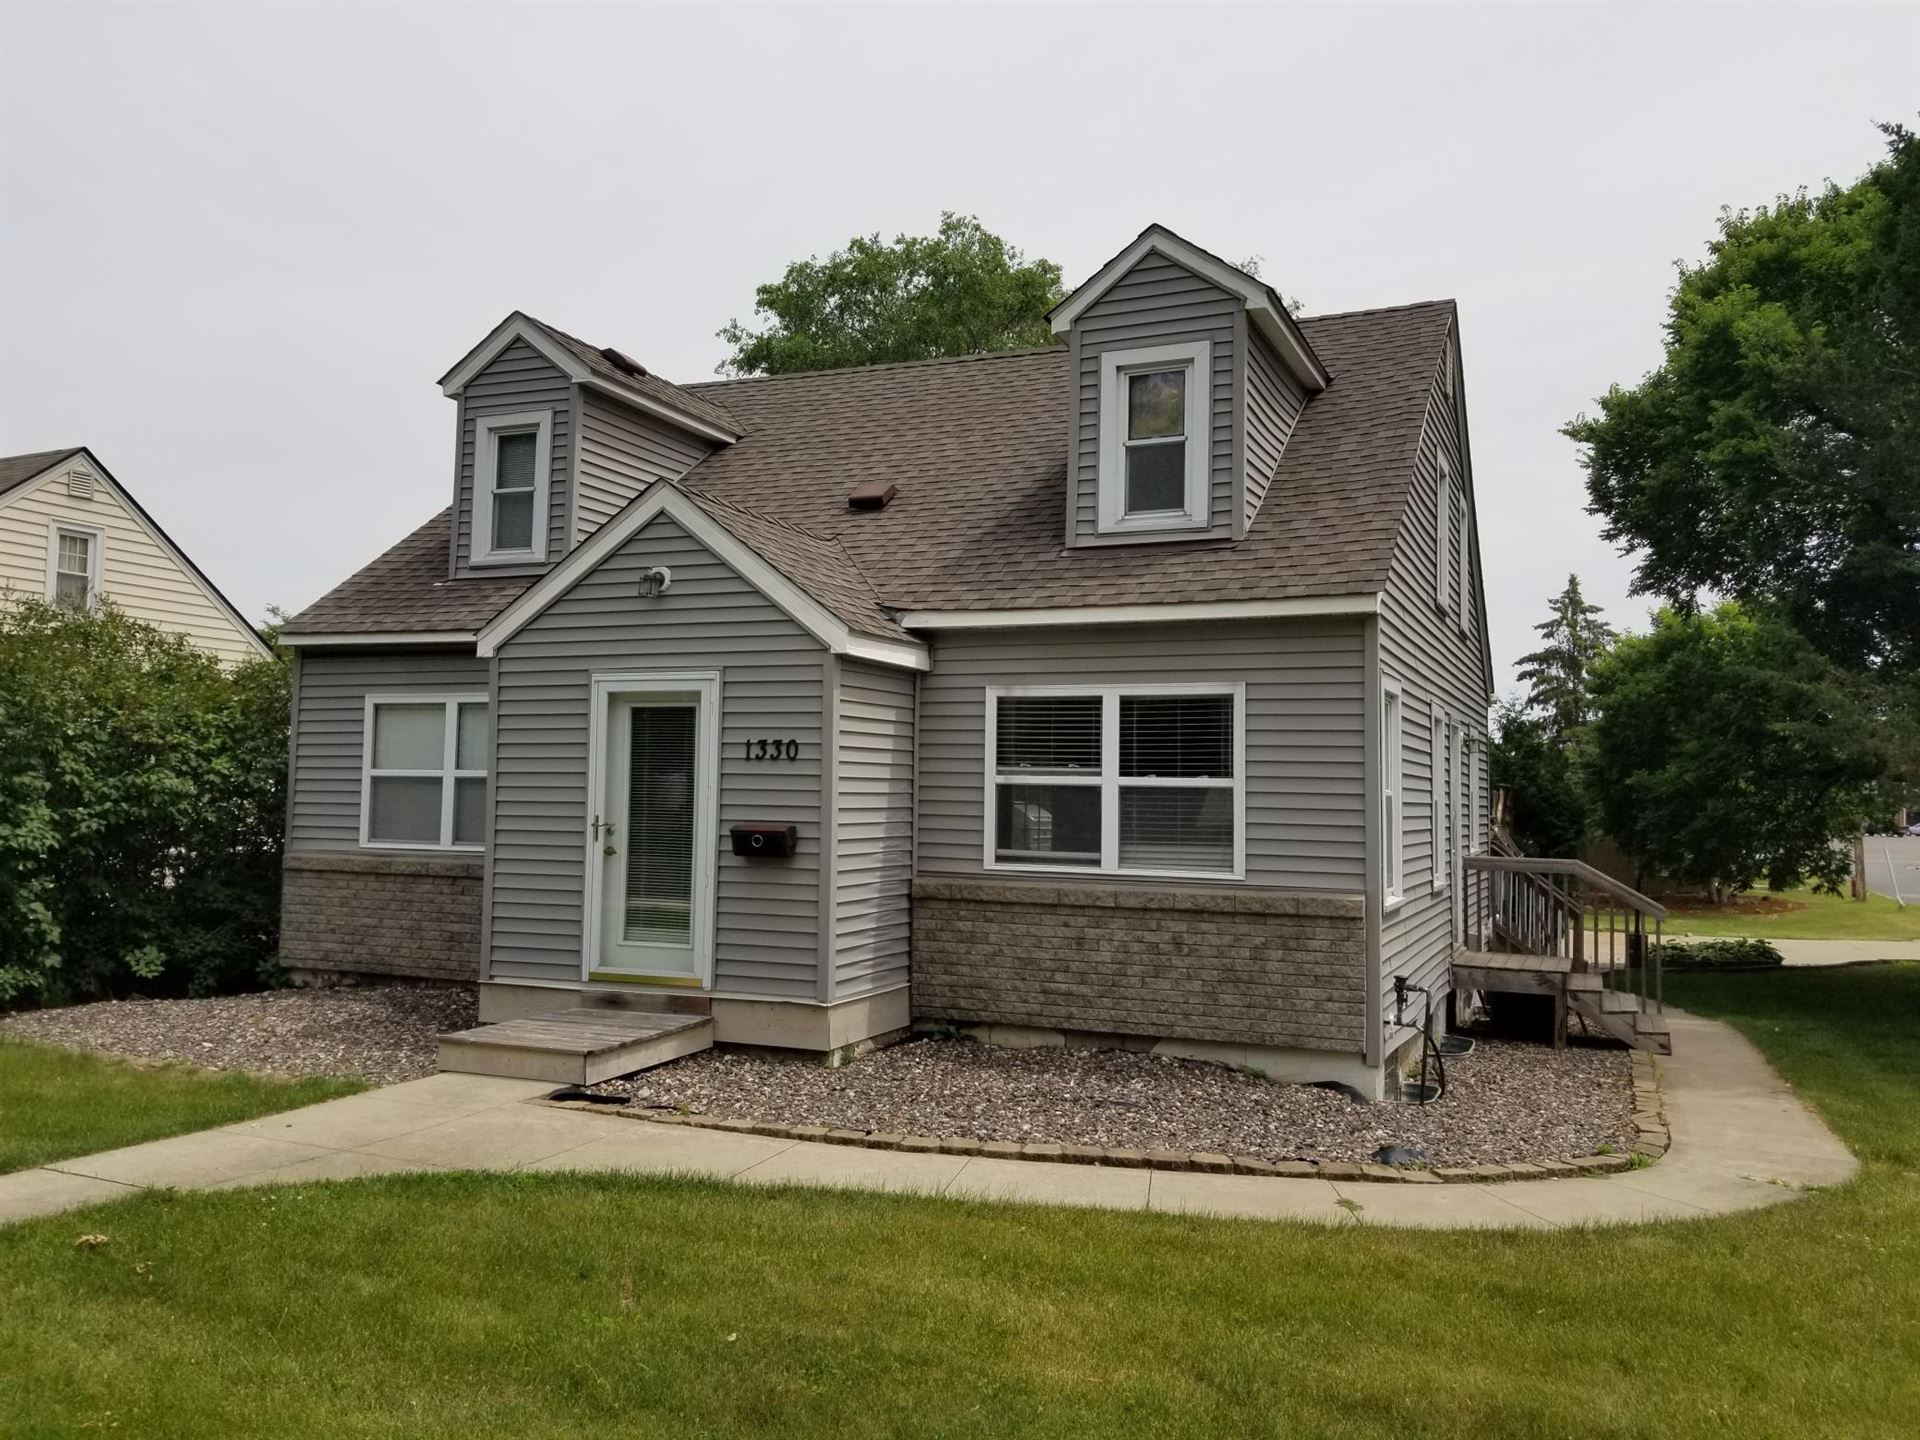 1330 4th Avenue, Anoka, MN 55303 - MLS#: 5612445